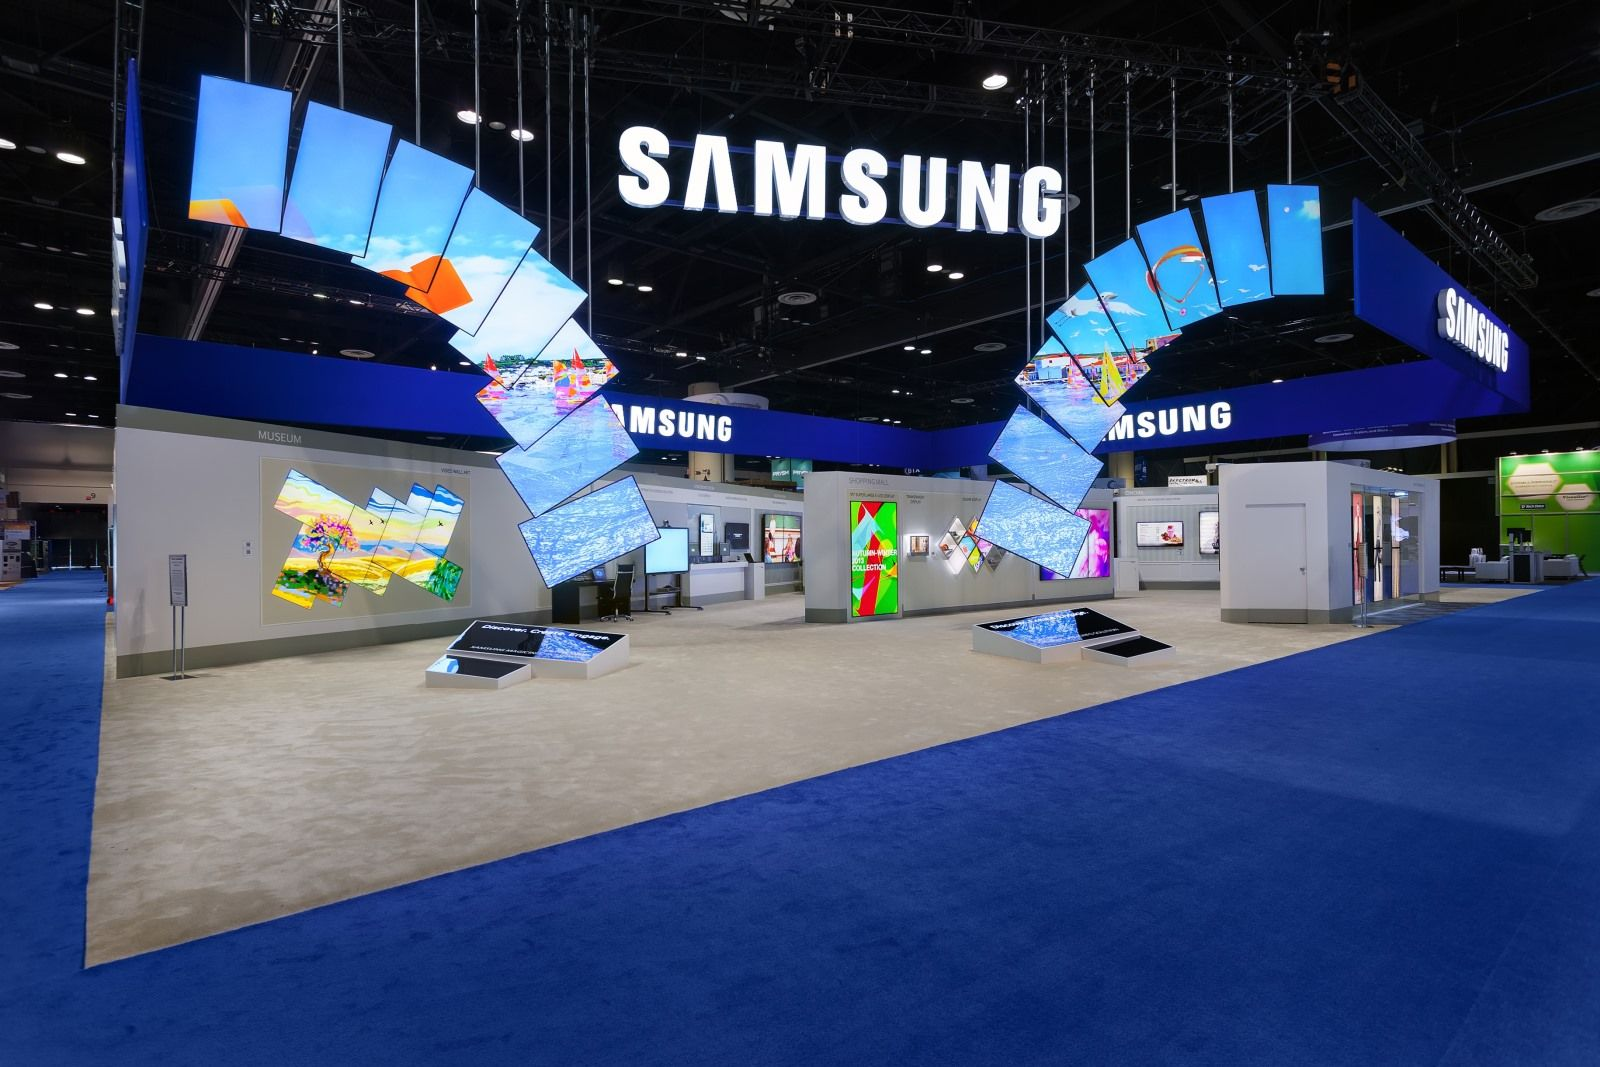 Trade Show Booth Design Ideas browse metros food beverage trade show display ideas in a variety of types and sizes metro exhibits has years of experience designing building Great Design For This Samsung Tradeshow Booth